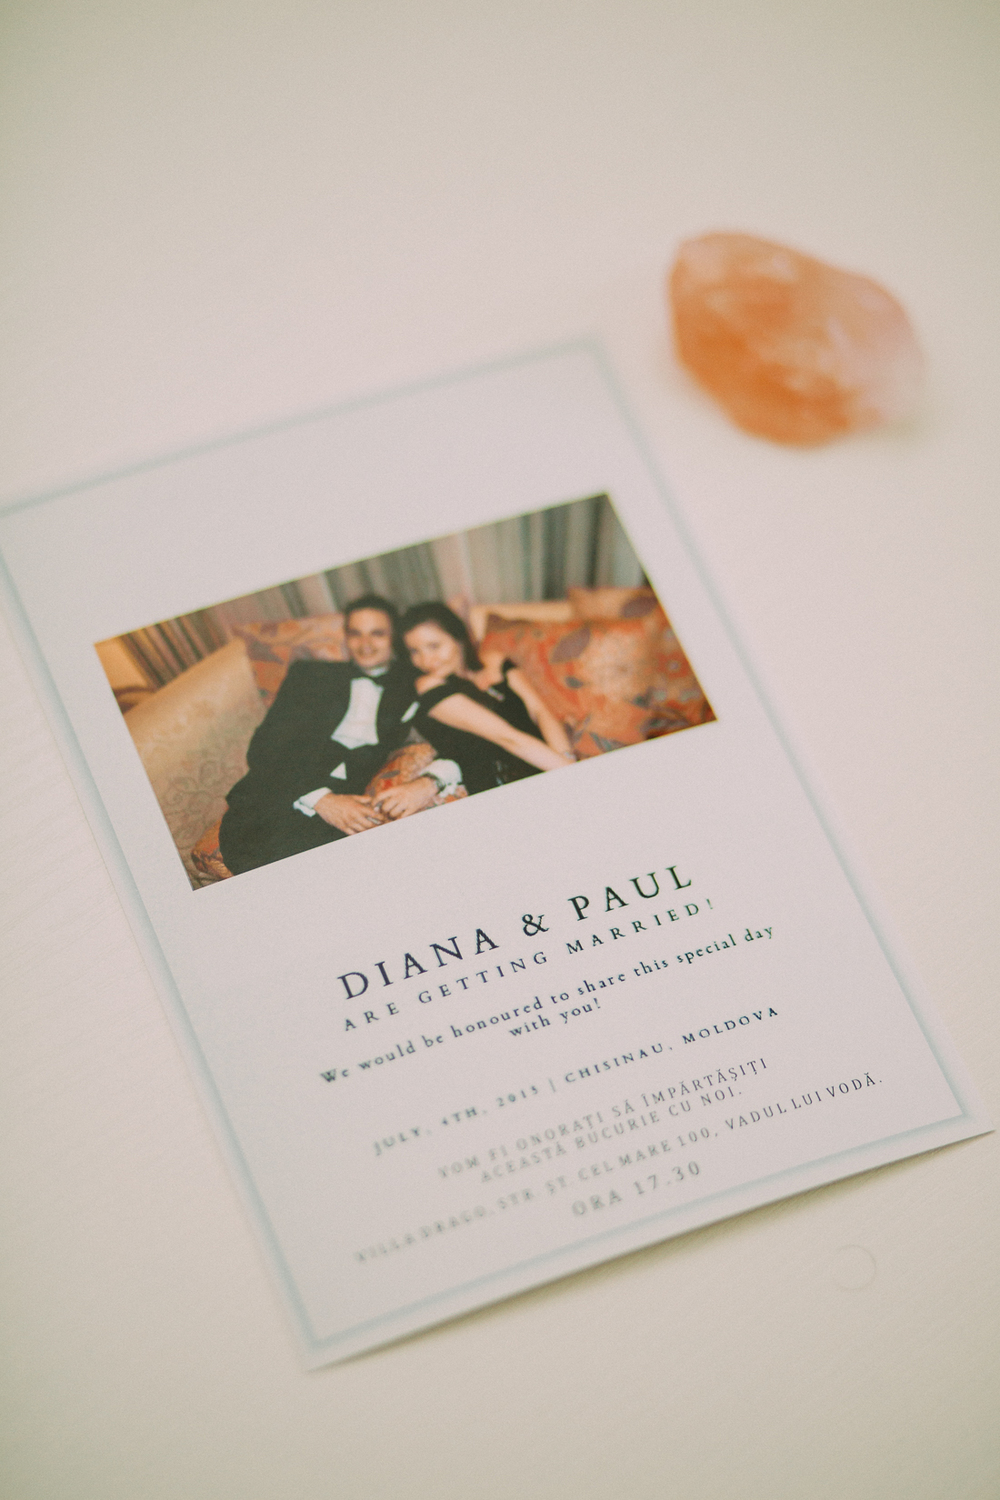 Diana & Paul, 4 July 2015-3.jpg